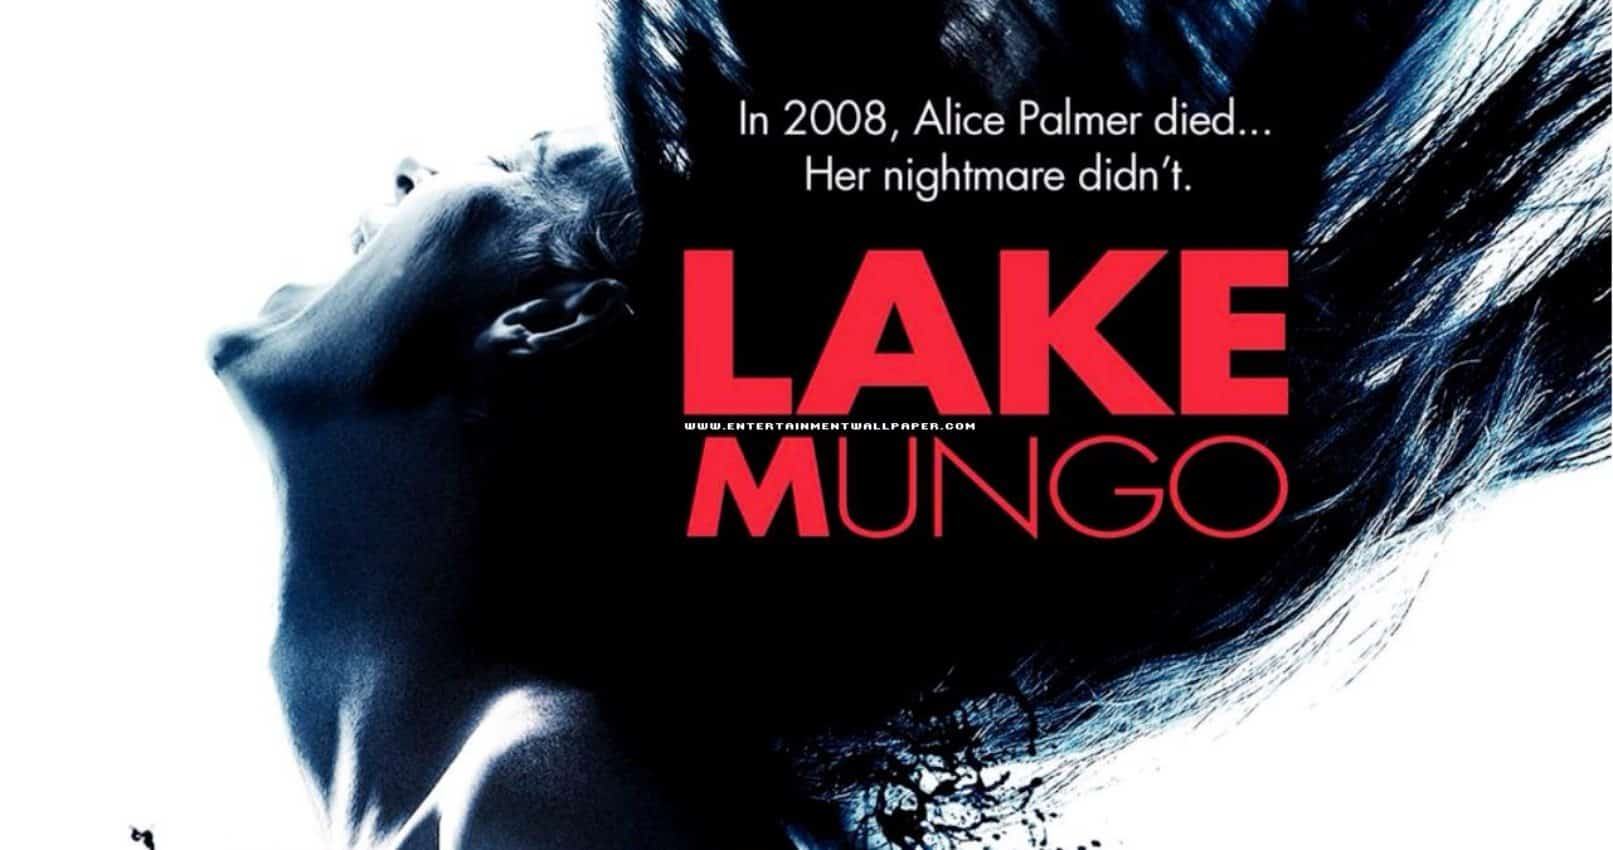 Horror Movie Review: Lake Mungo (2008)